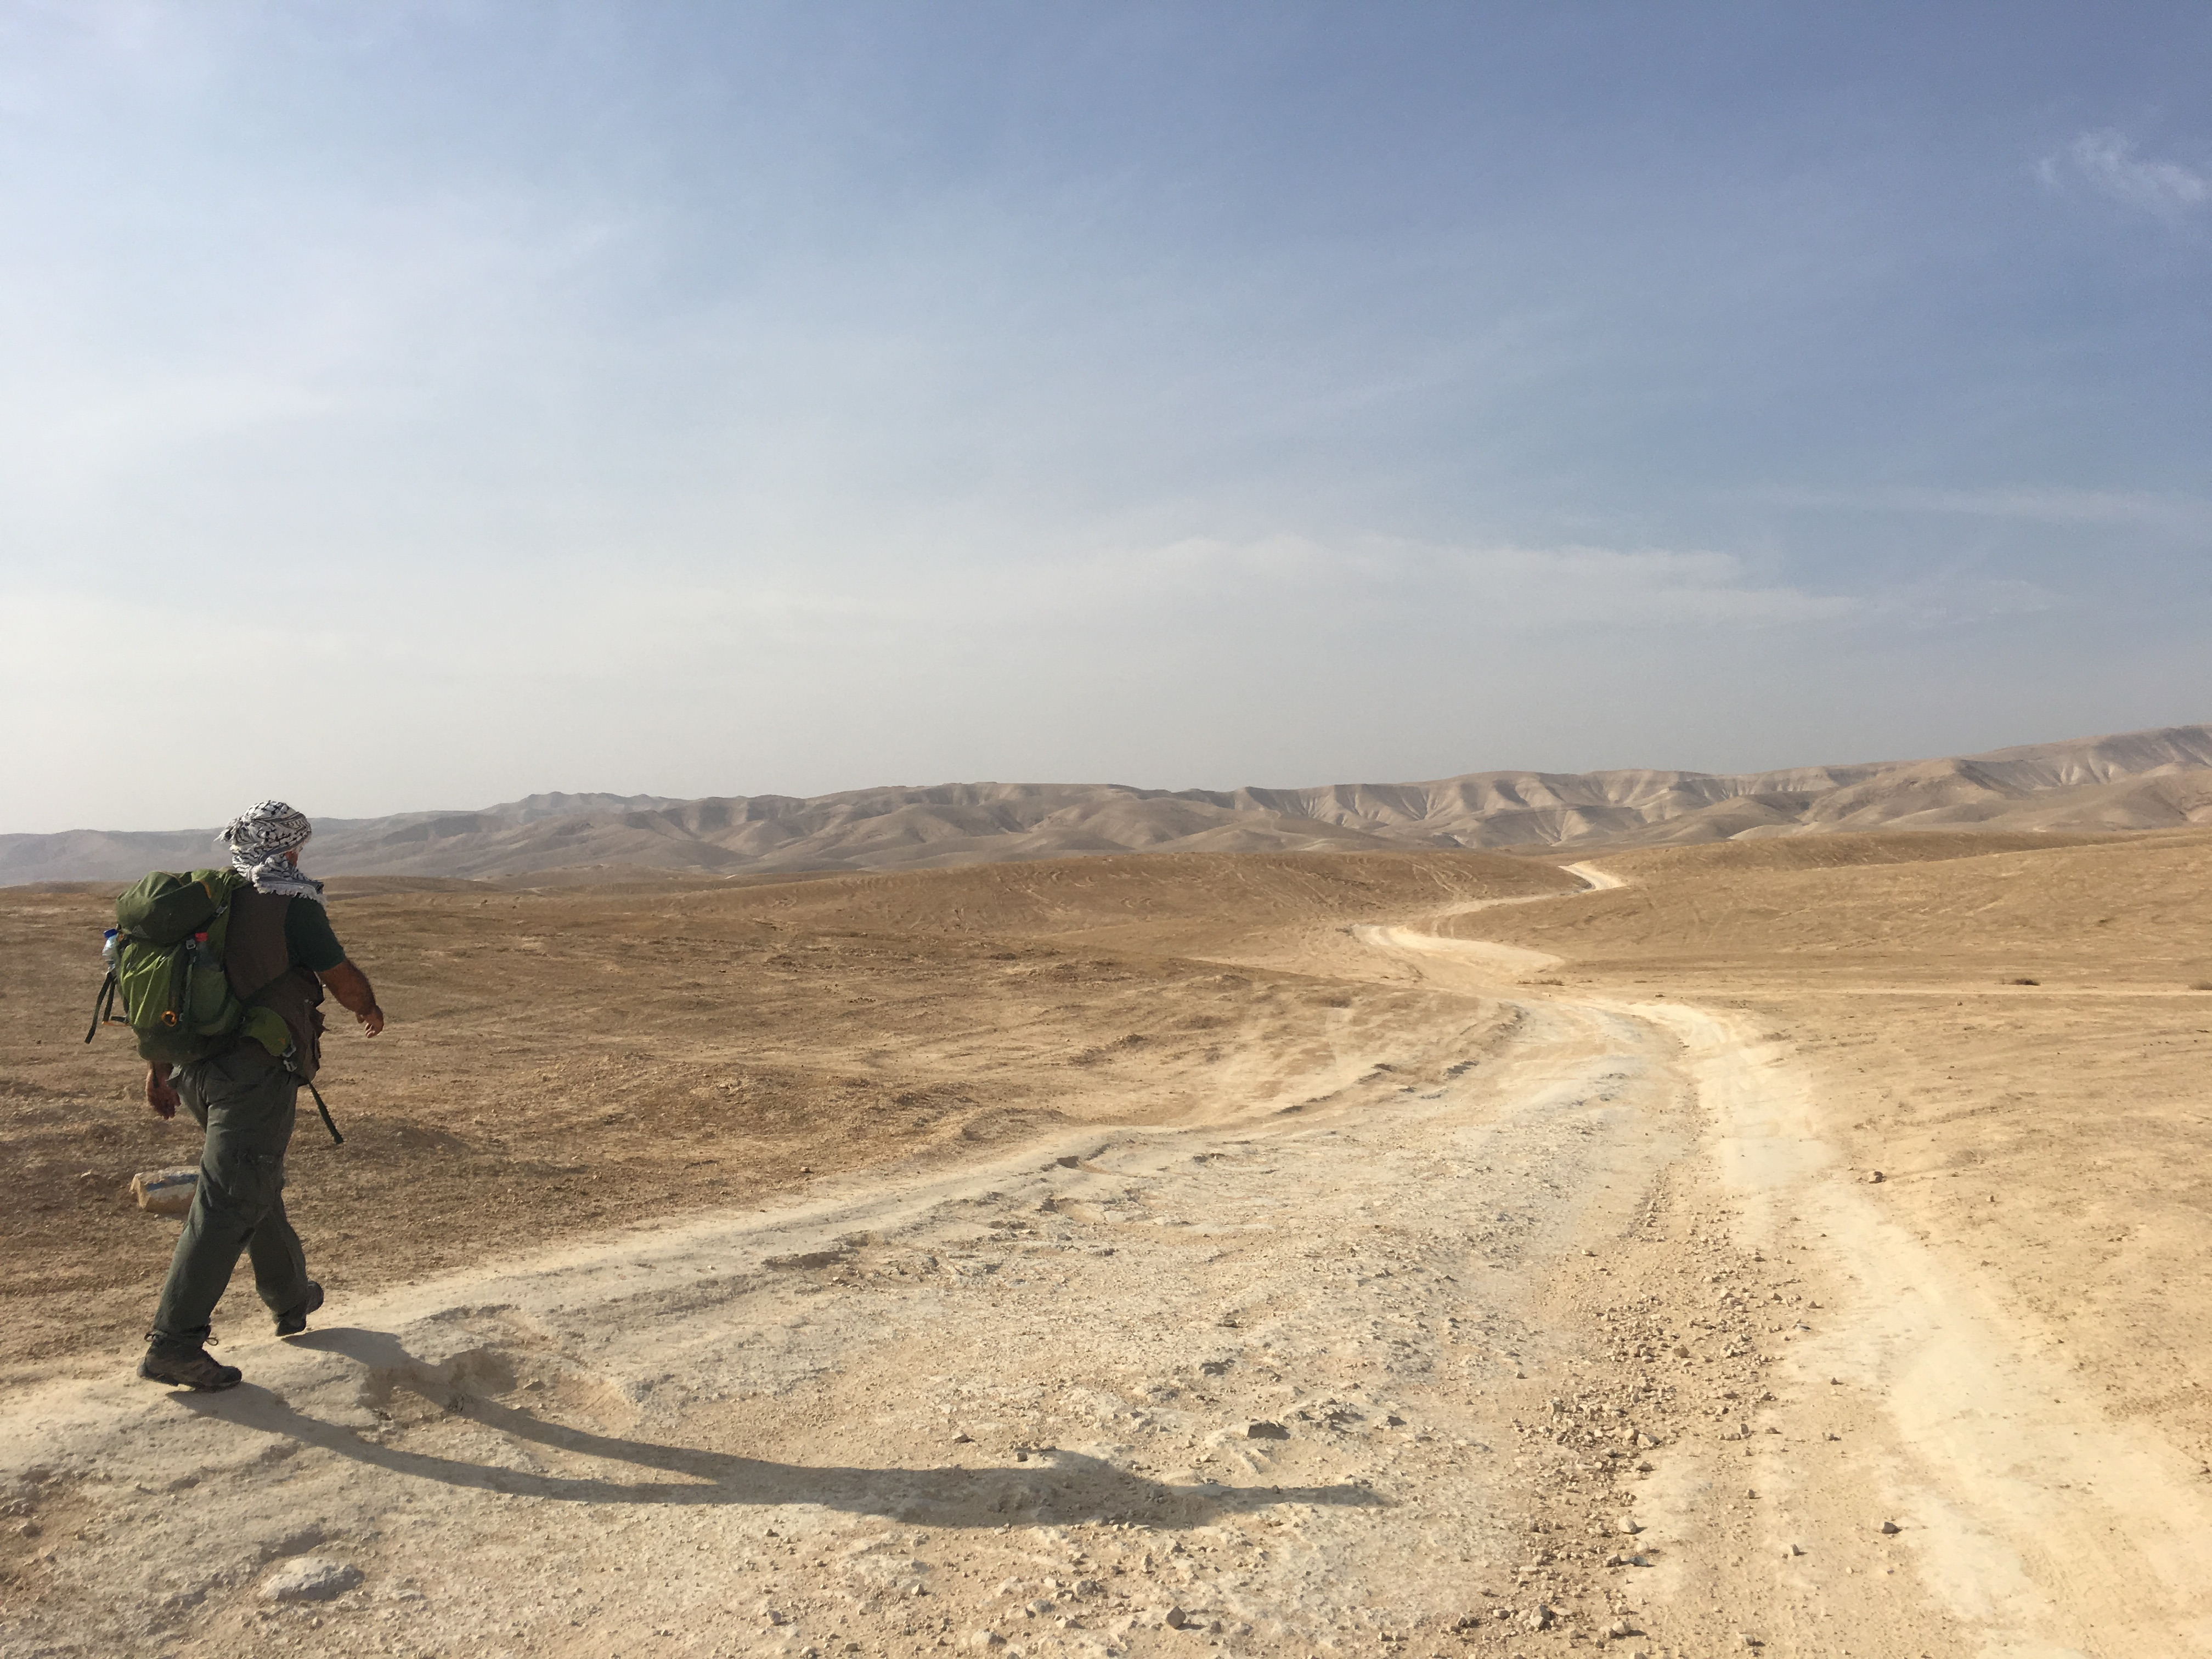 Desert Hiking, Walking in Palestine, Palestine, Hiking, Abraham's Path, Crooked Compass